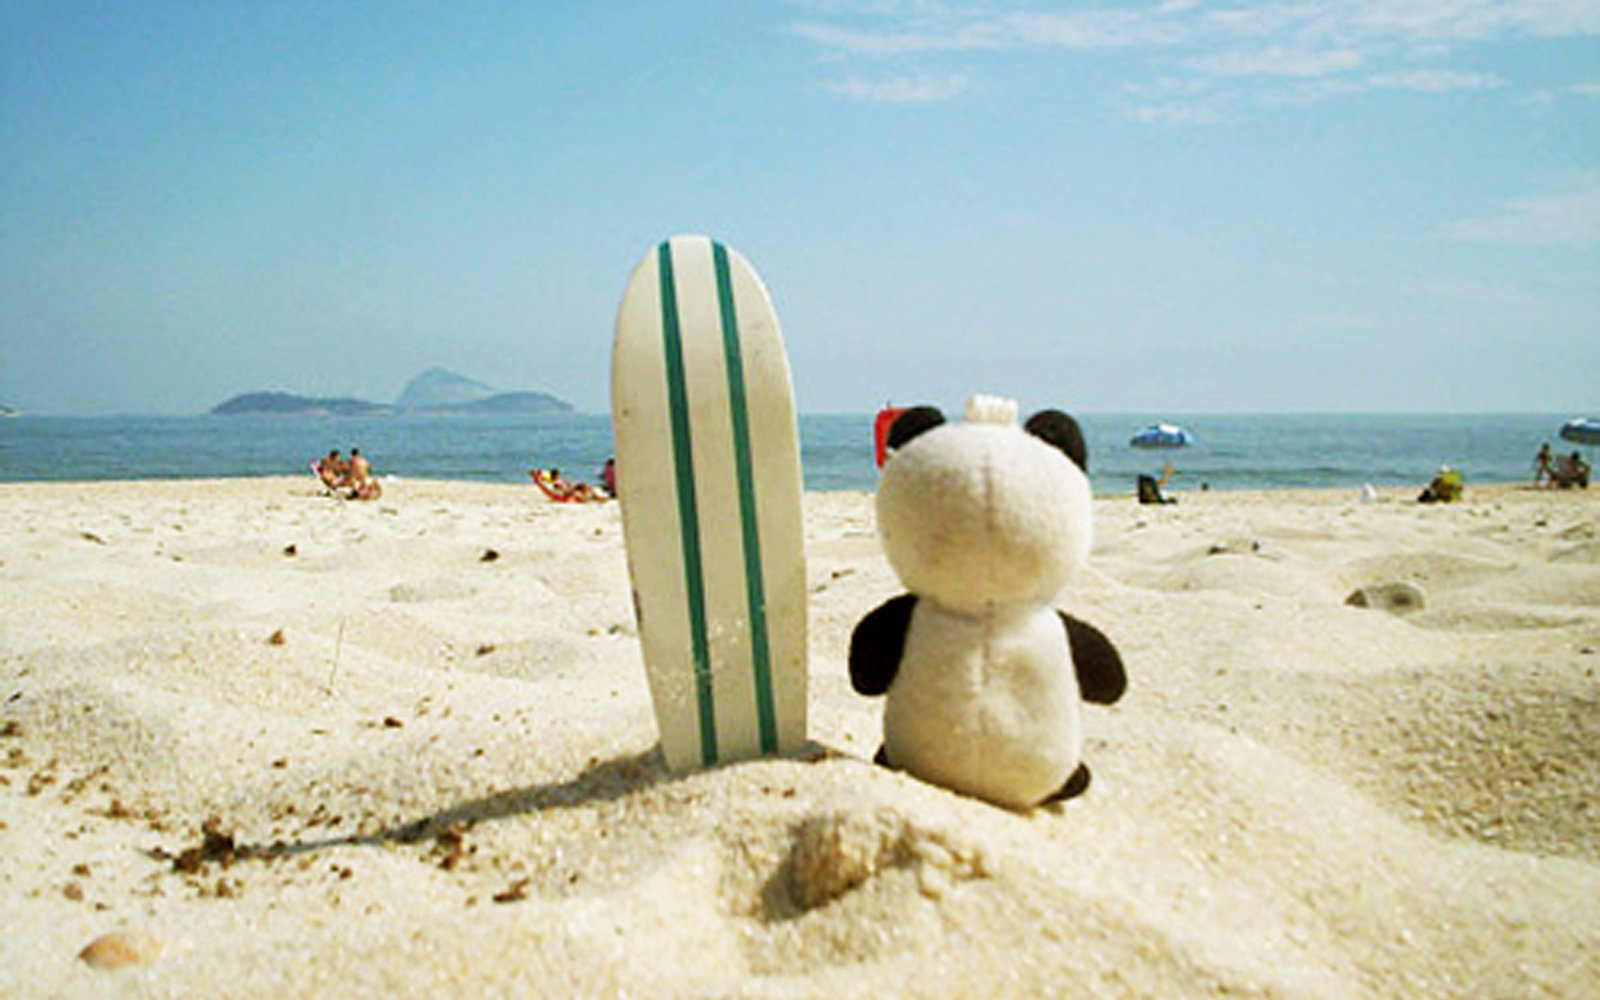 Panda toy on vacation